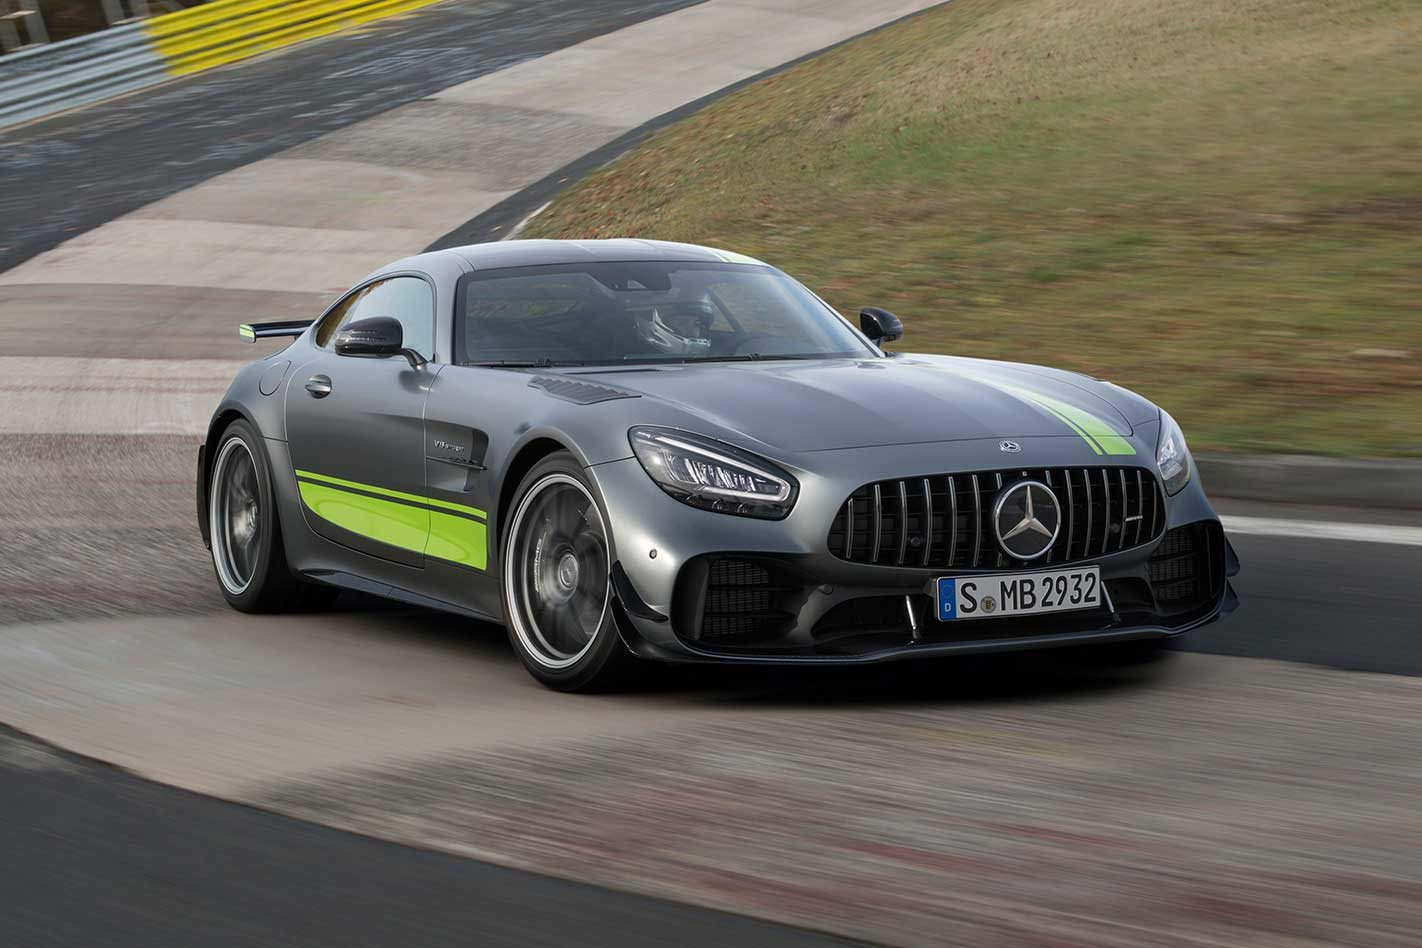 2019 Mercedes Amg Gt R Pro Heralds Facelifted Gt La Auto Show 2018